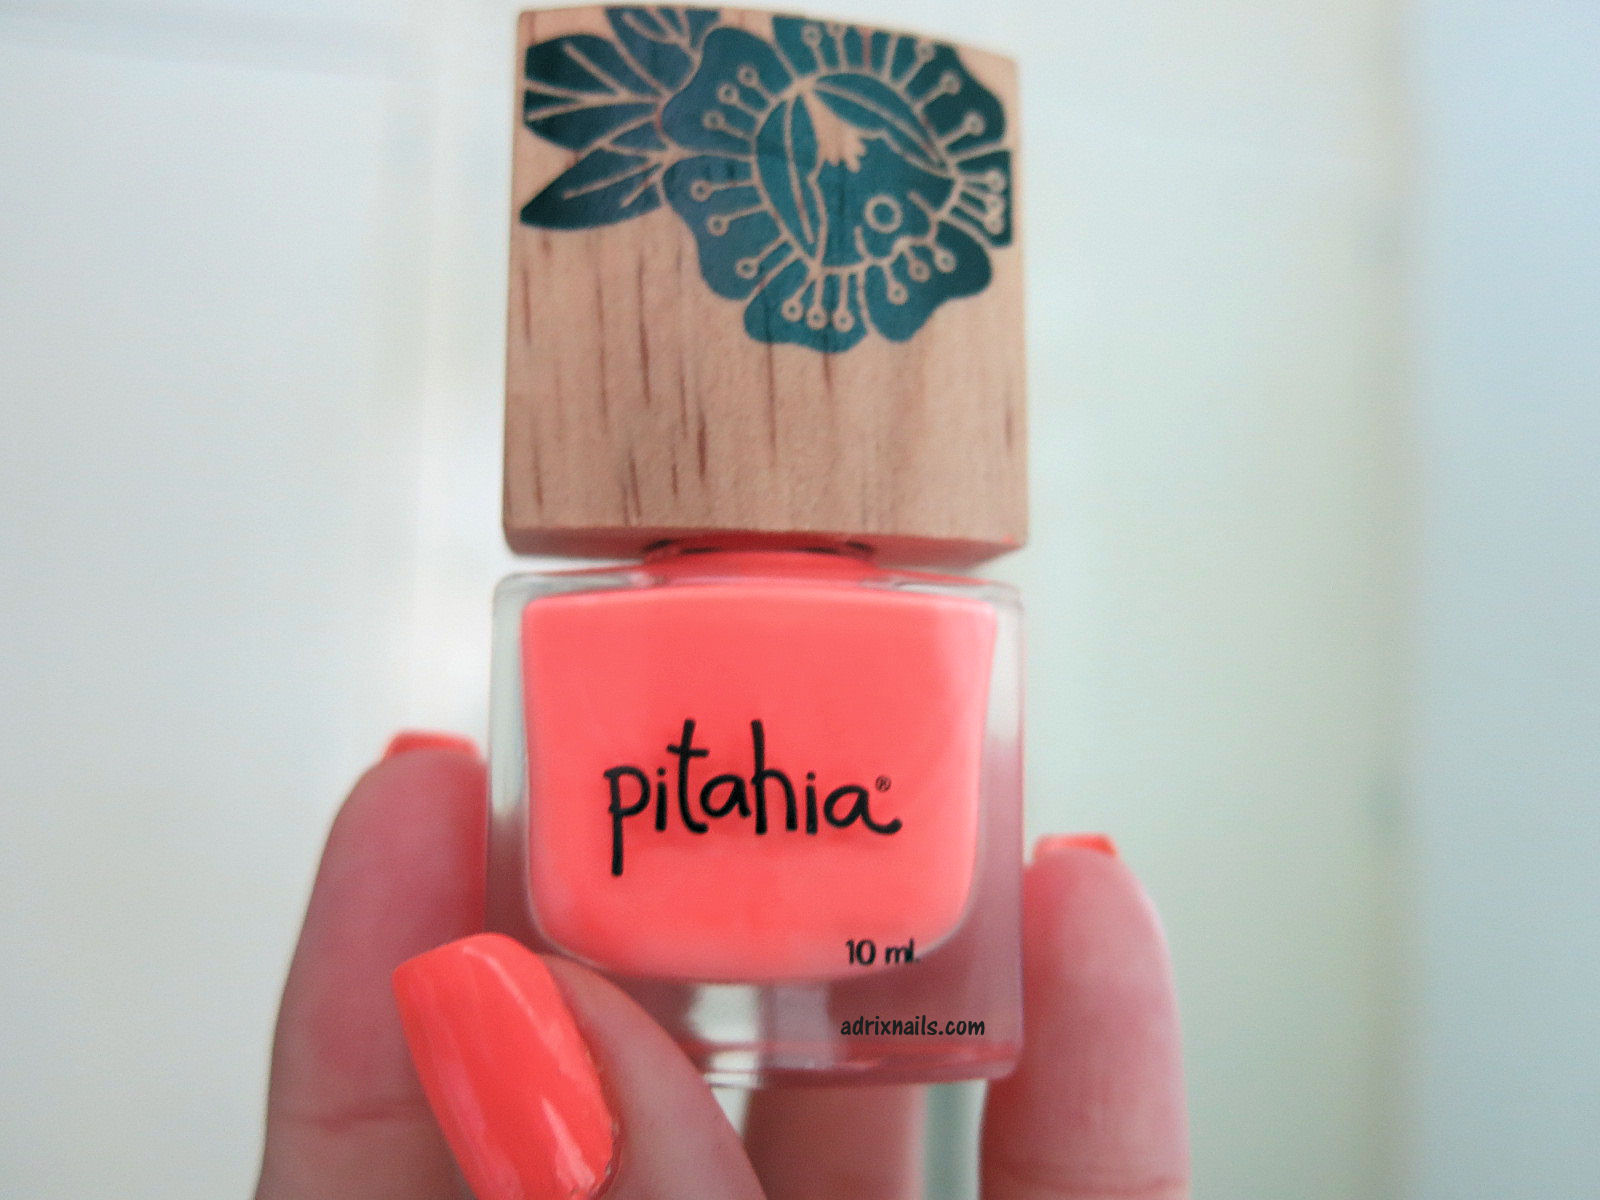 COLORES: PITAHIA -DALIA- | Adrix Nails: Uñas, barnices, nail art!♥